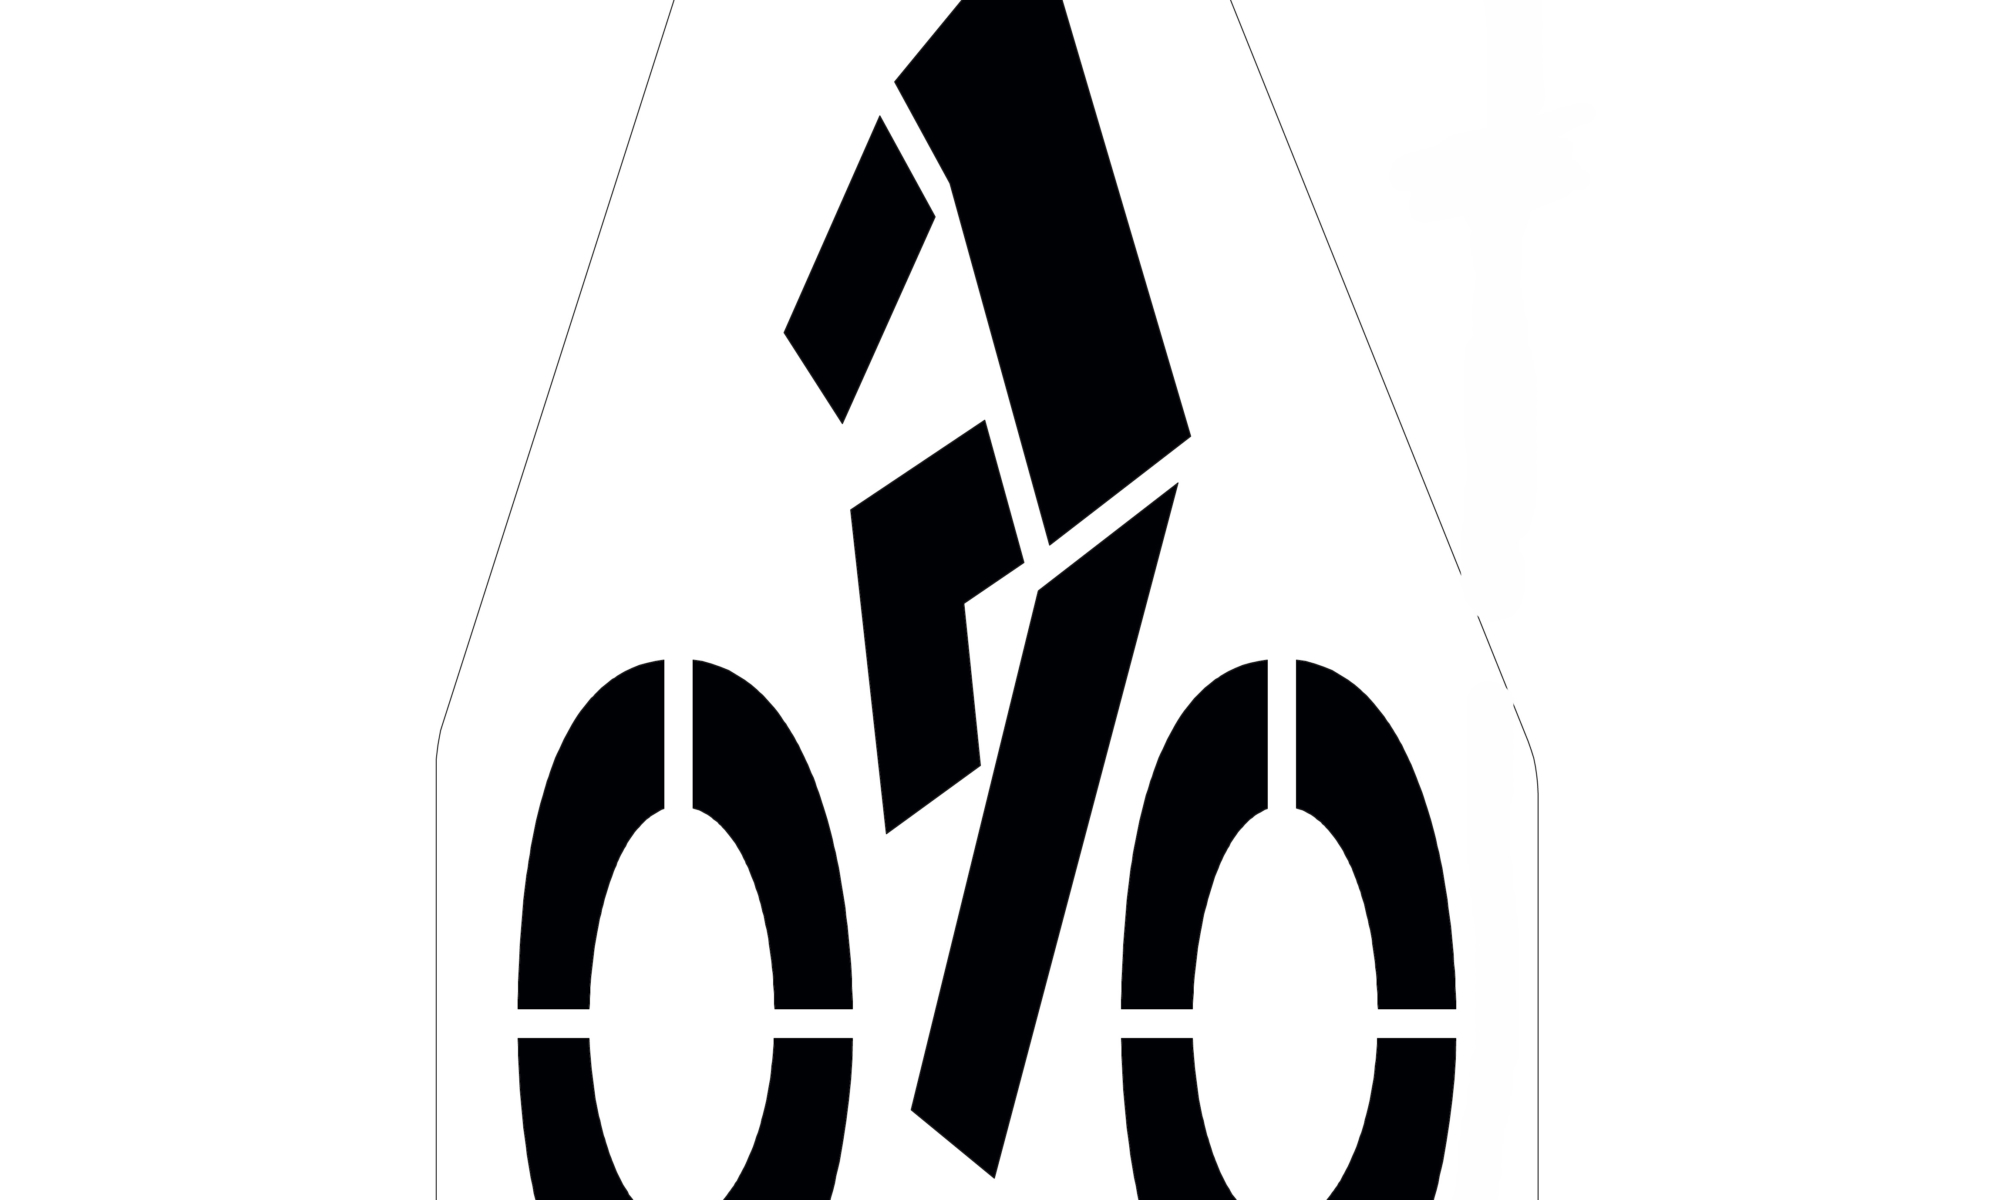 """Bike paths and lanes are becoming increasingly popular. Make sure you have a stencil durable enough to be used over and over. Each stencil is made from our 1/8"""" (125mil) Polytough plastic and comes with a lifetime warranty. <ul> <li><strong>Built to last:</strong>Made of the thickest material available 1/8"""" (125mil) PolyTough plastic</li> <li><strong>Lies Flat: </strong>No need to tape. Wont move or blow away.</li> <li><strong>Easy to clean:</strong> Dried cracked paint can be brushed off. Or clean with a hose</li> <li><strong>Easy to Store</strong>: Can be rolled up for easy transport and storage</li> </ul>"""